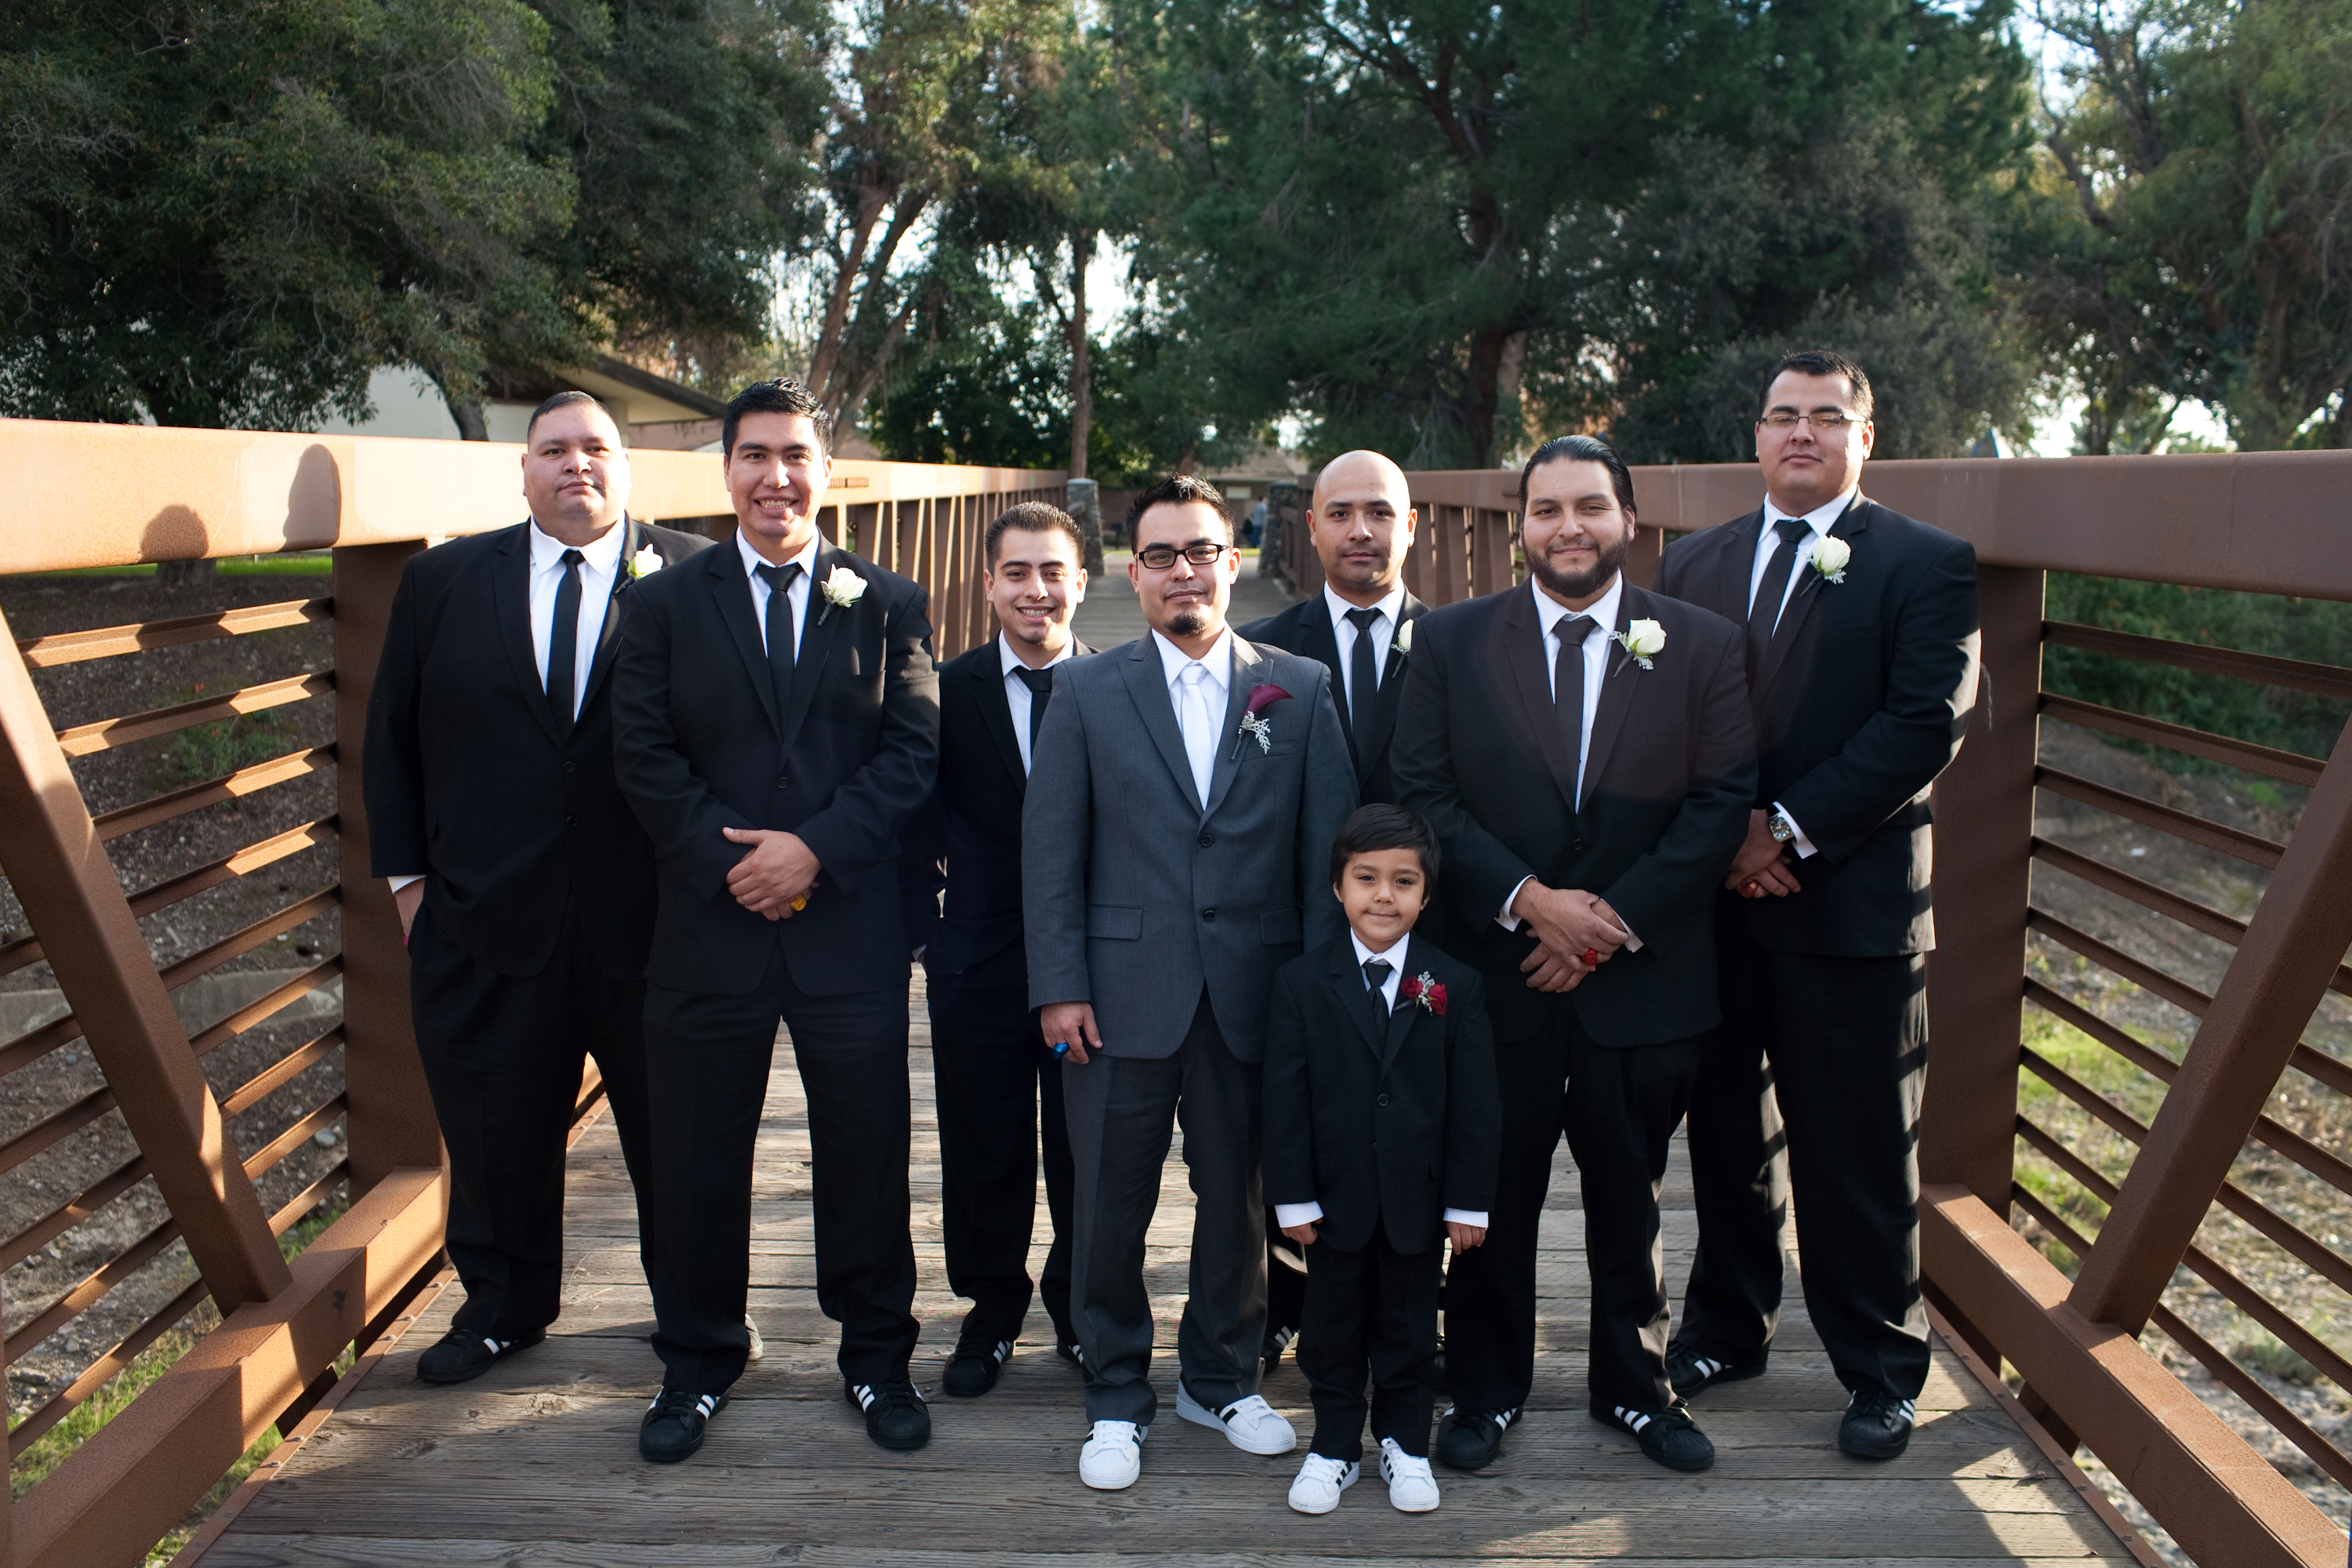 black, Groomsmen, Gifts